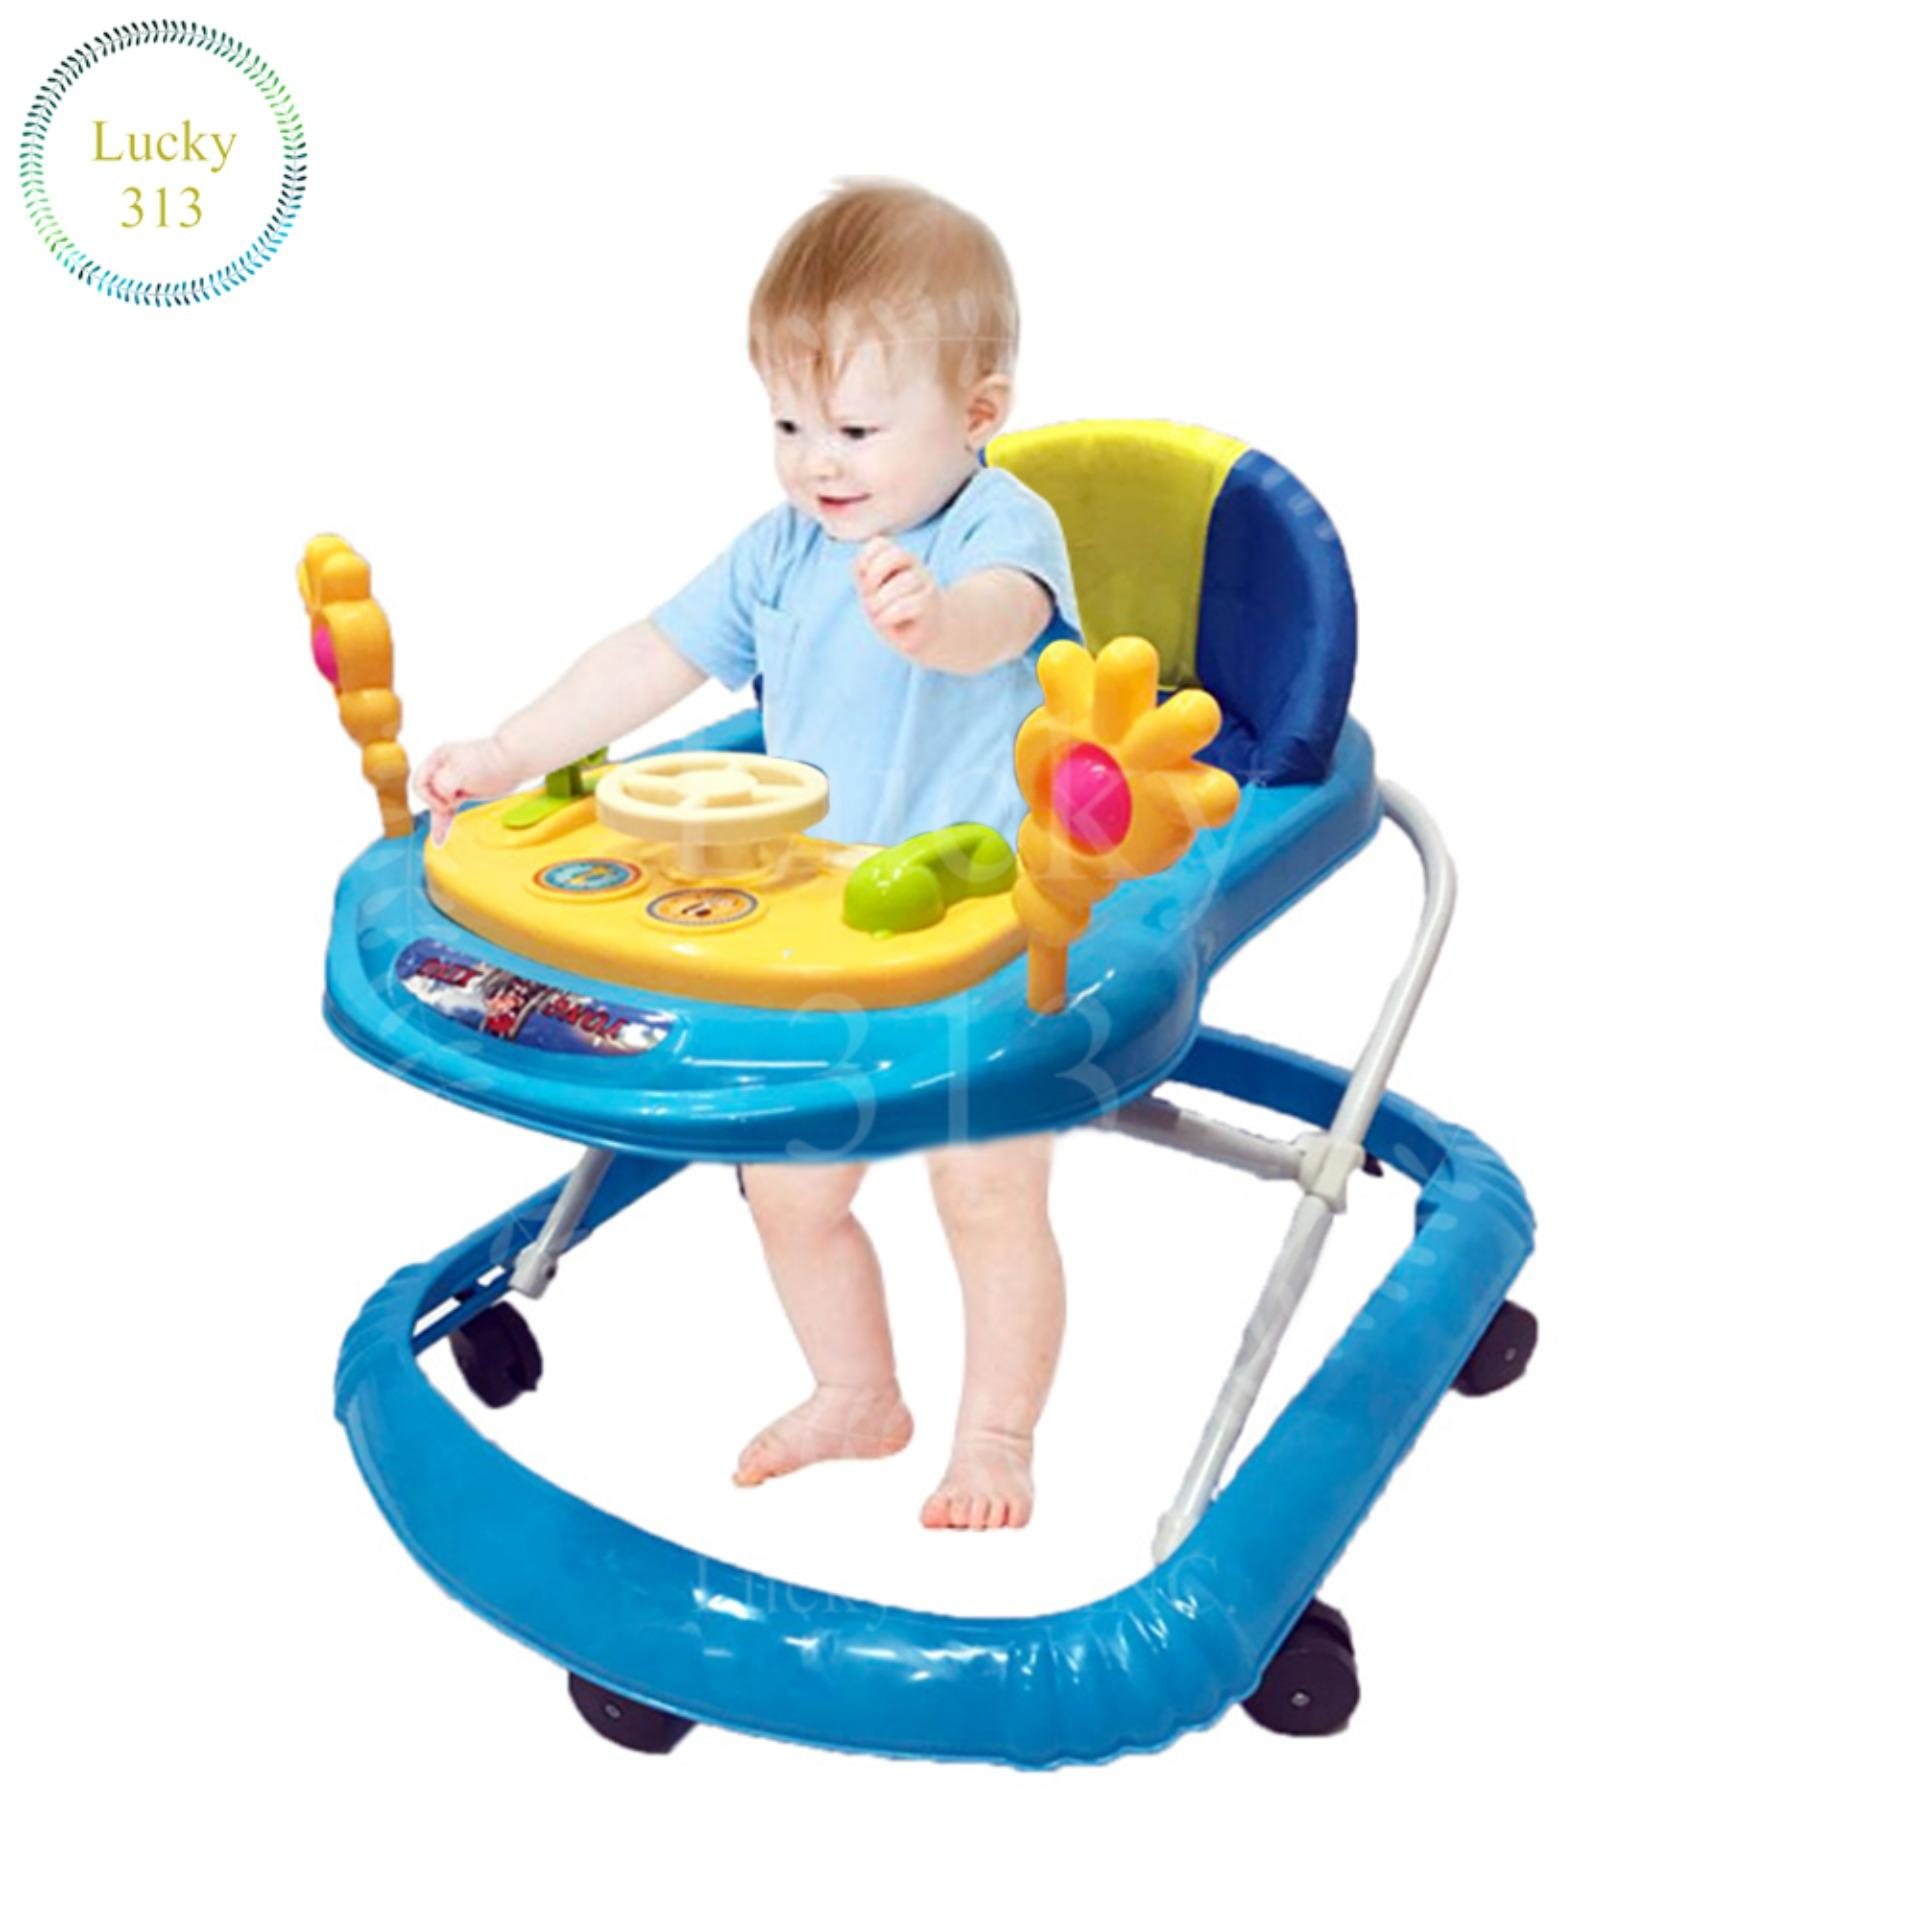 Cute Musical Soft Cushion Baby Walker With Car Steering Wheel Light Blue